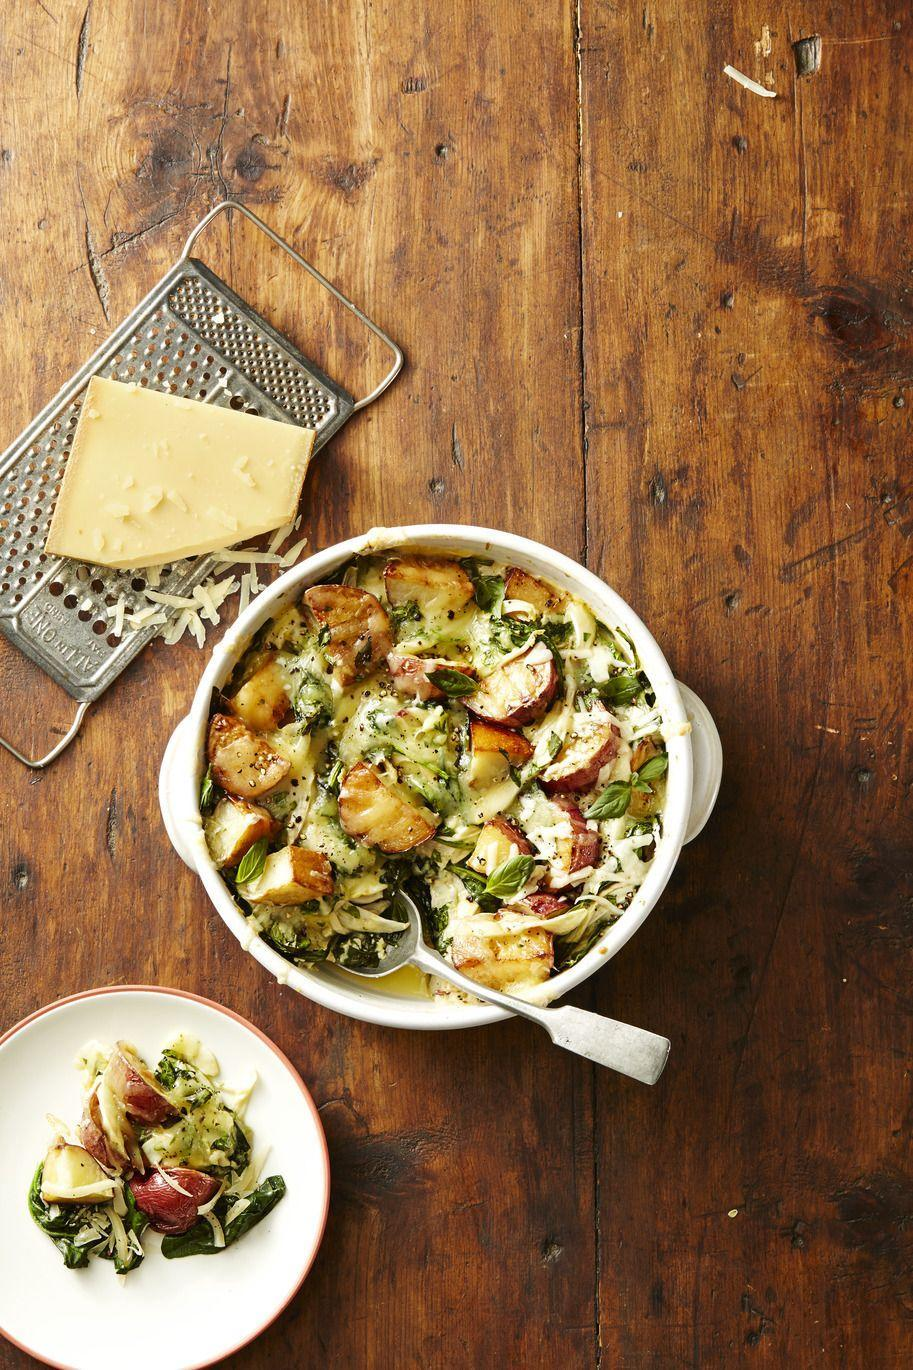 """<p>Spinach and fennel keep this dinner-party worthy dish just on the right side of healthy.</p><p><em><a href=""""https://www.goodhousekeeping.com/food-recipes/a42223/spinach-gruyere-potato-casserole-recipe/"""" rel=""""nofollow noopener"""" target=""""_blank"""" data-ylk=""""slk:Get the recipe for Spinach and Gruyere Potato Casserole »"""" class=""""link rapid-noclick-resp"""">Get the recipe for Spinach and Gruyere Potato Casserole »</a></em></p>"""